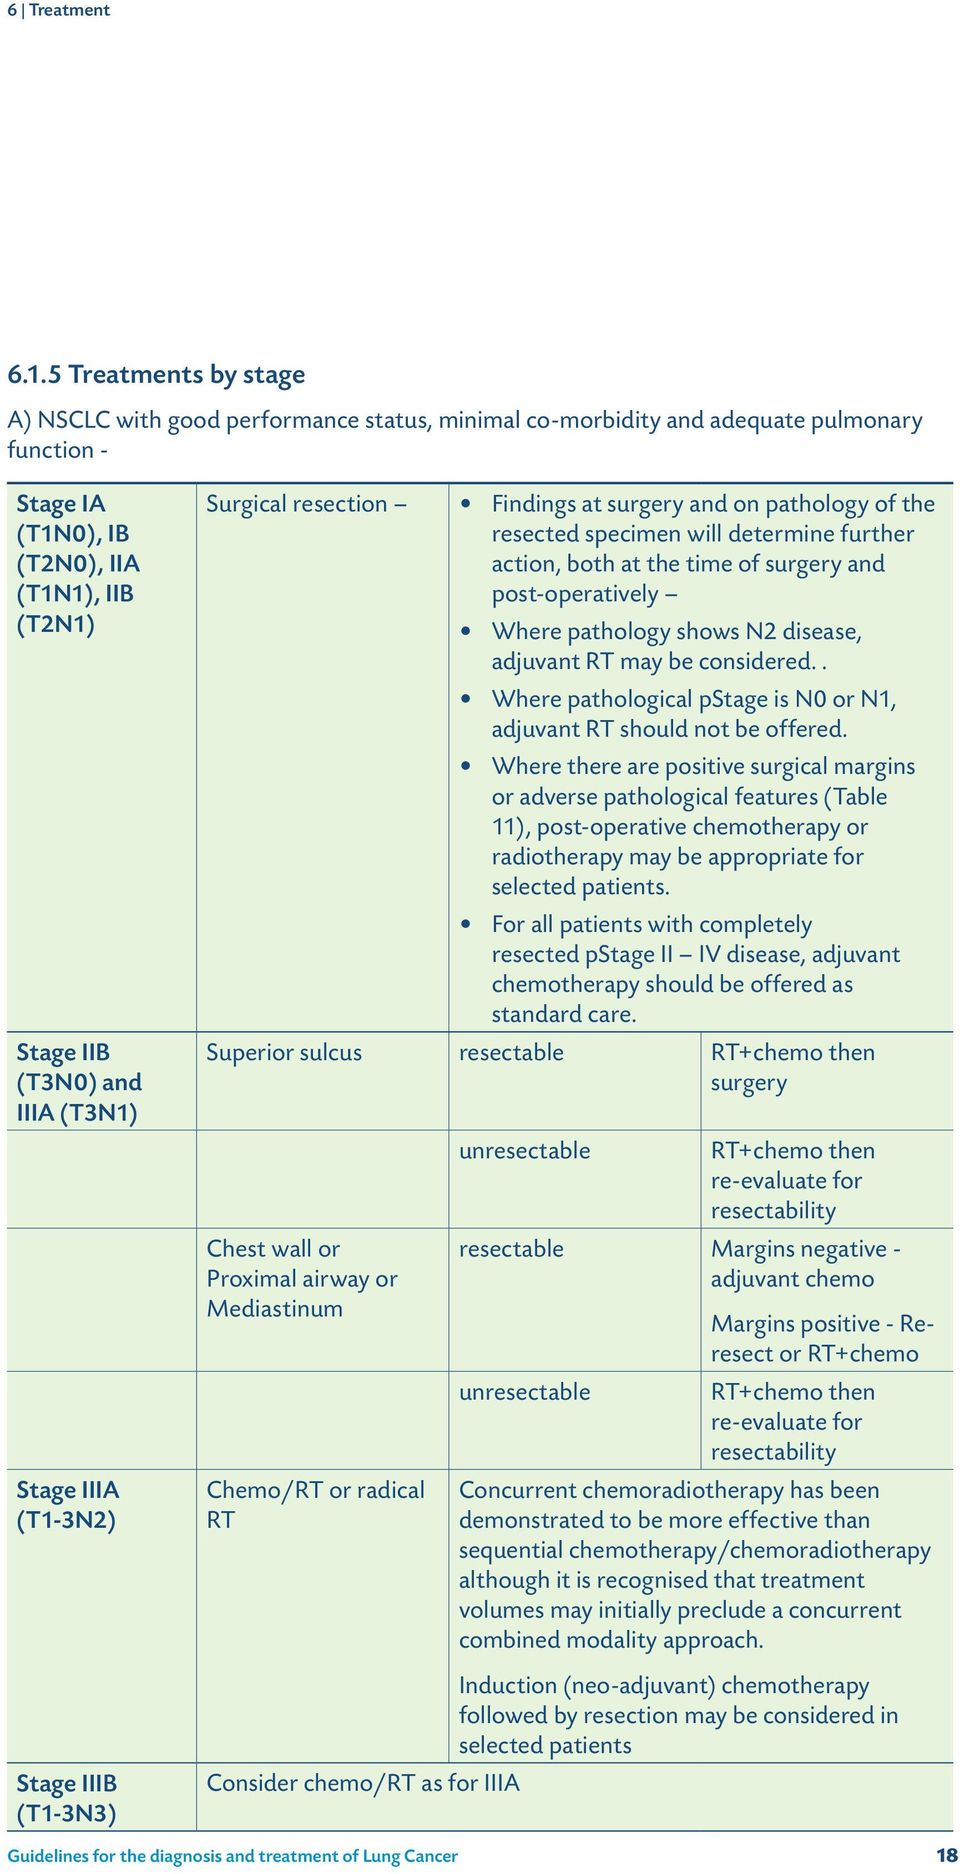 Stage IIIA (T1-3N2) Stage IIIB (T1-3N3) Surgical resection Findings at surgery and on pathology of the resected specimen will determine further action, both at the time of surgery and